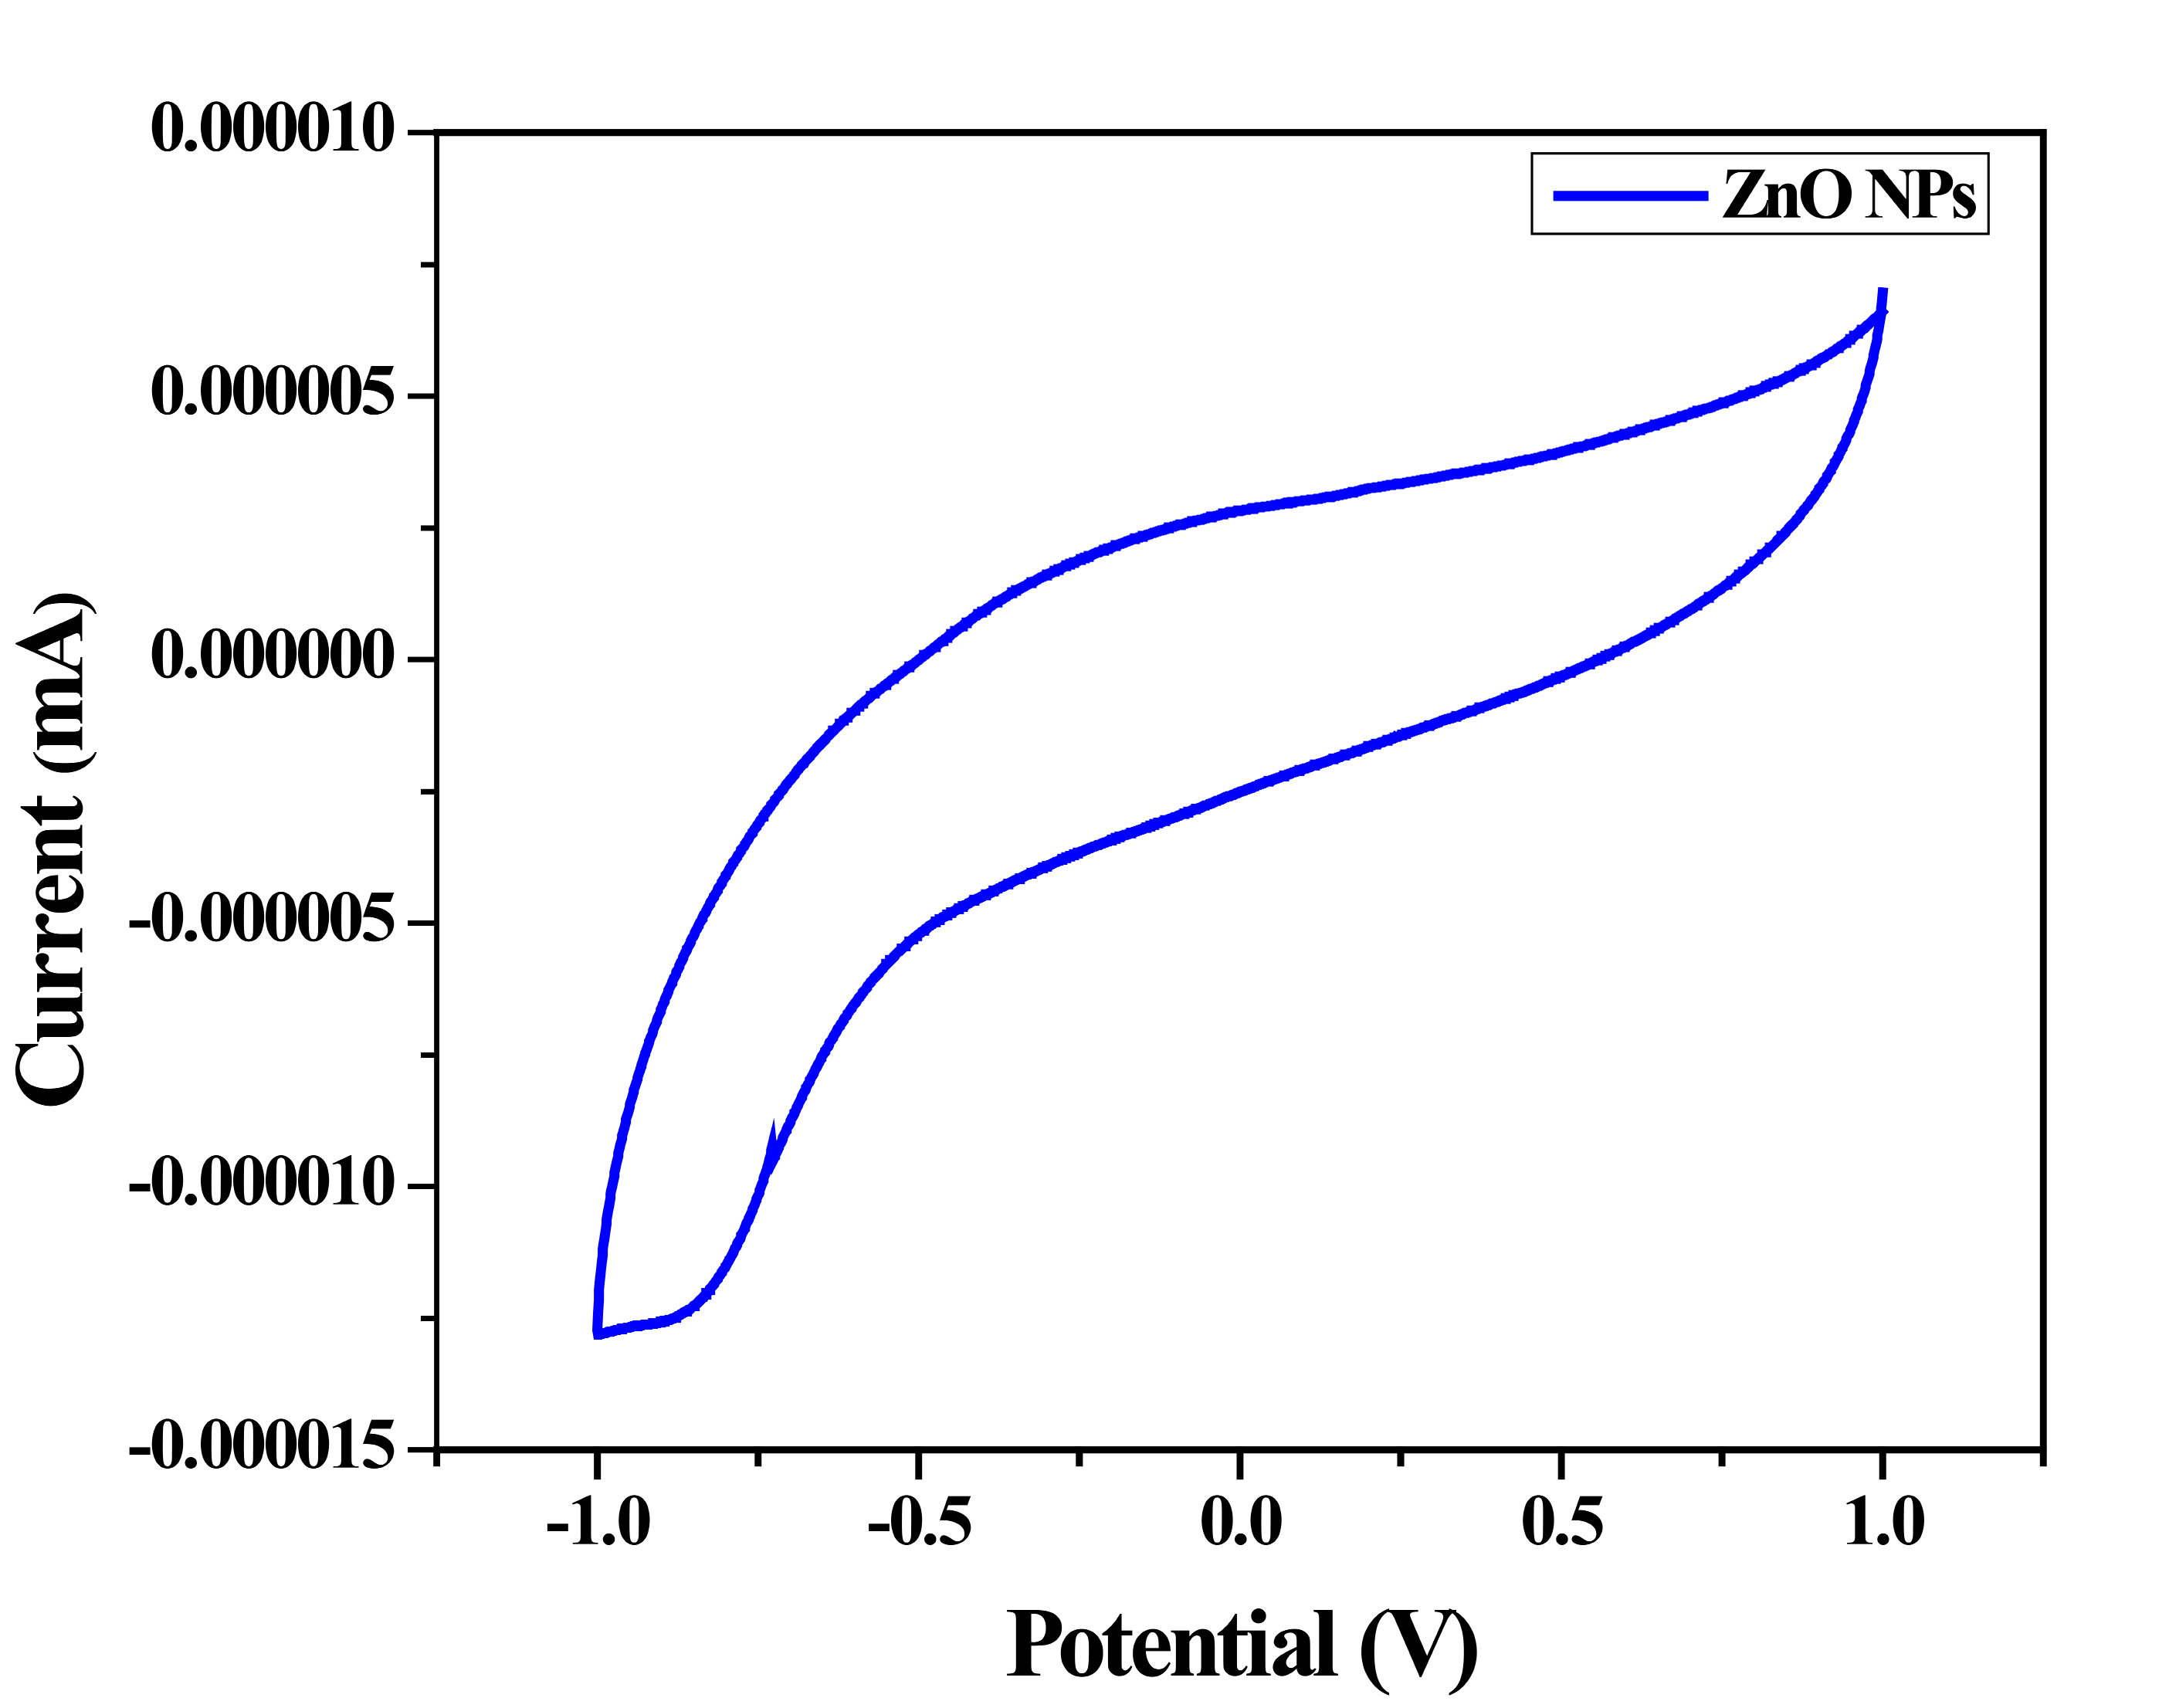 Figure 9. Cyclic voltammetry of ZnO NPs in water as solvent a scan rate at 100 mV s-1.